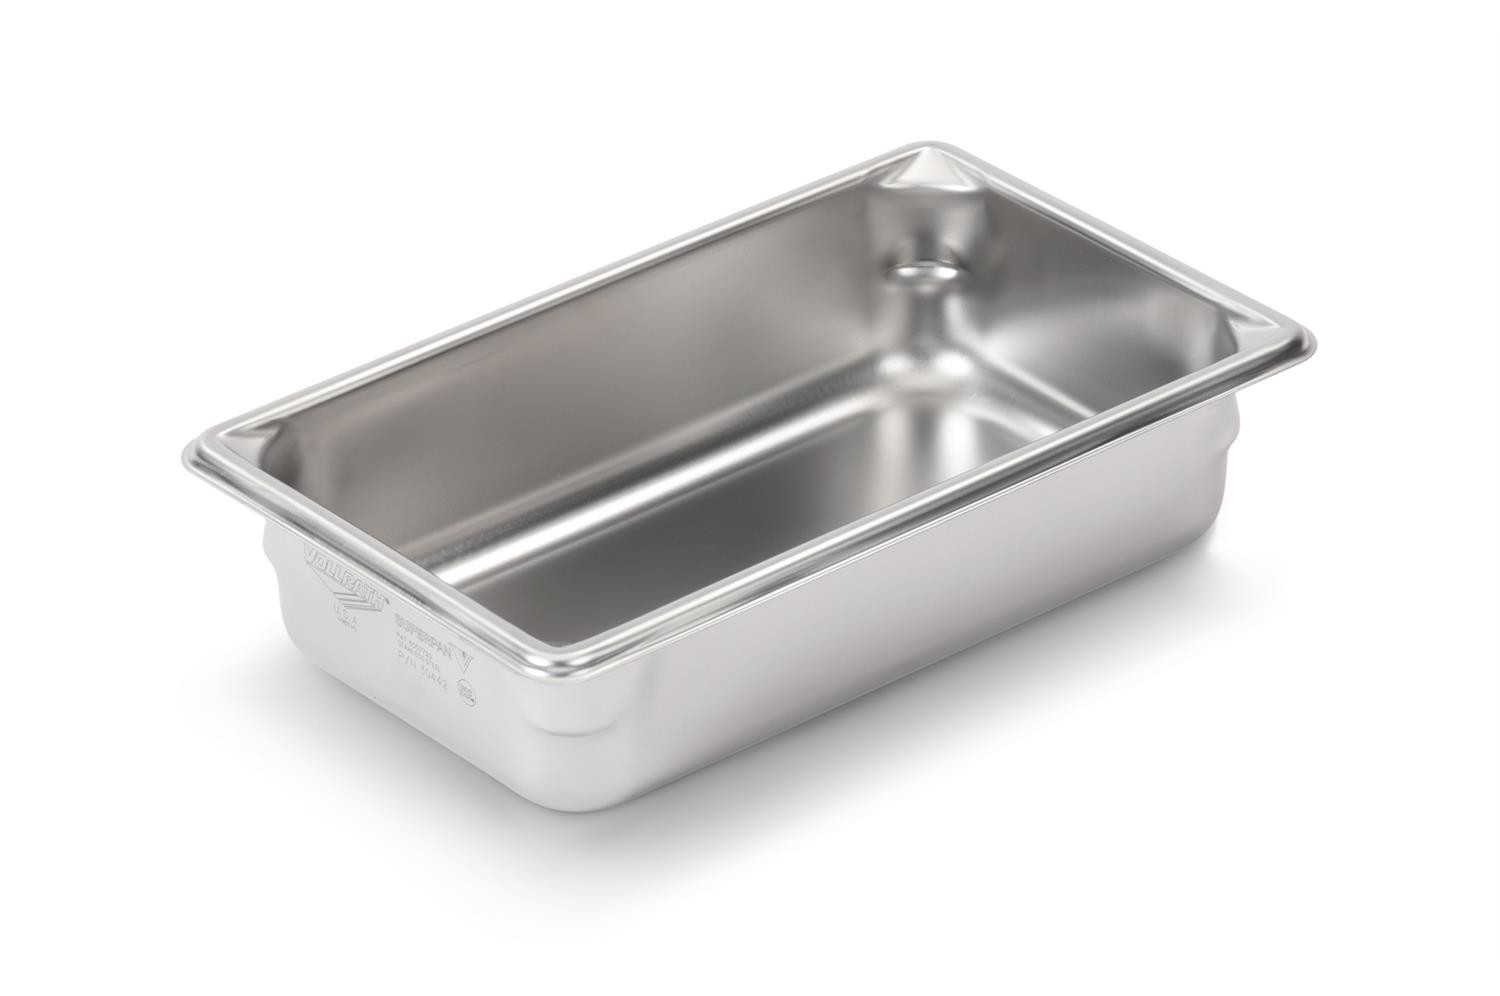 Vollrath 30342 Super Pan V Stainless Steel 1/3 Size Anti-Jam Steam Table Pan - 4